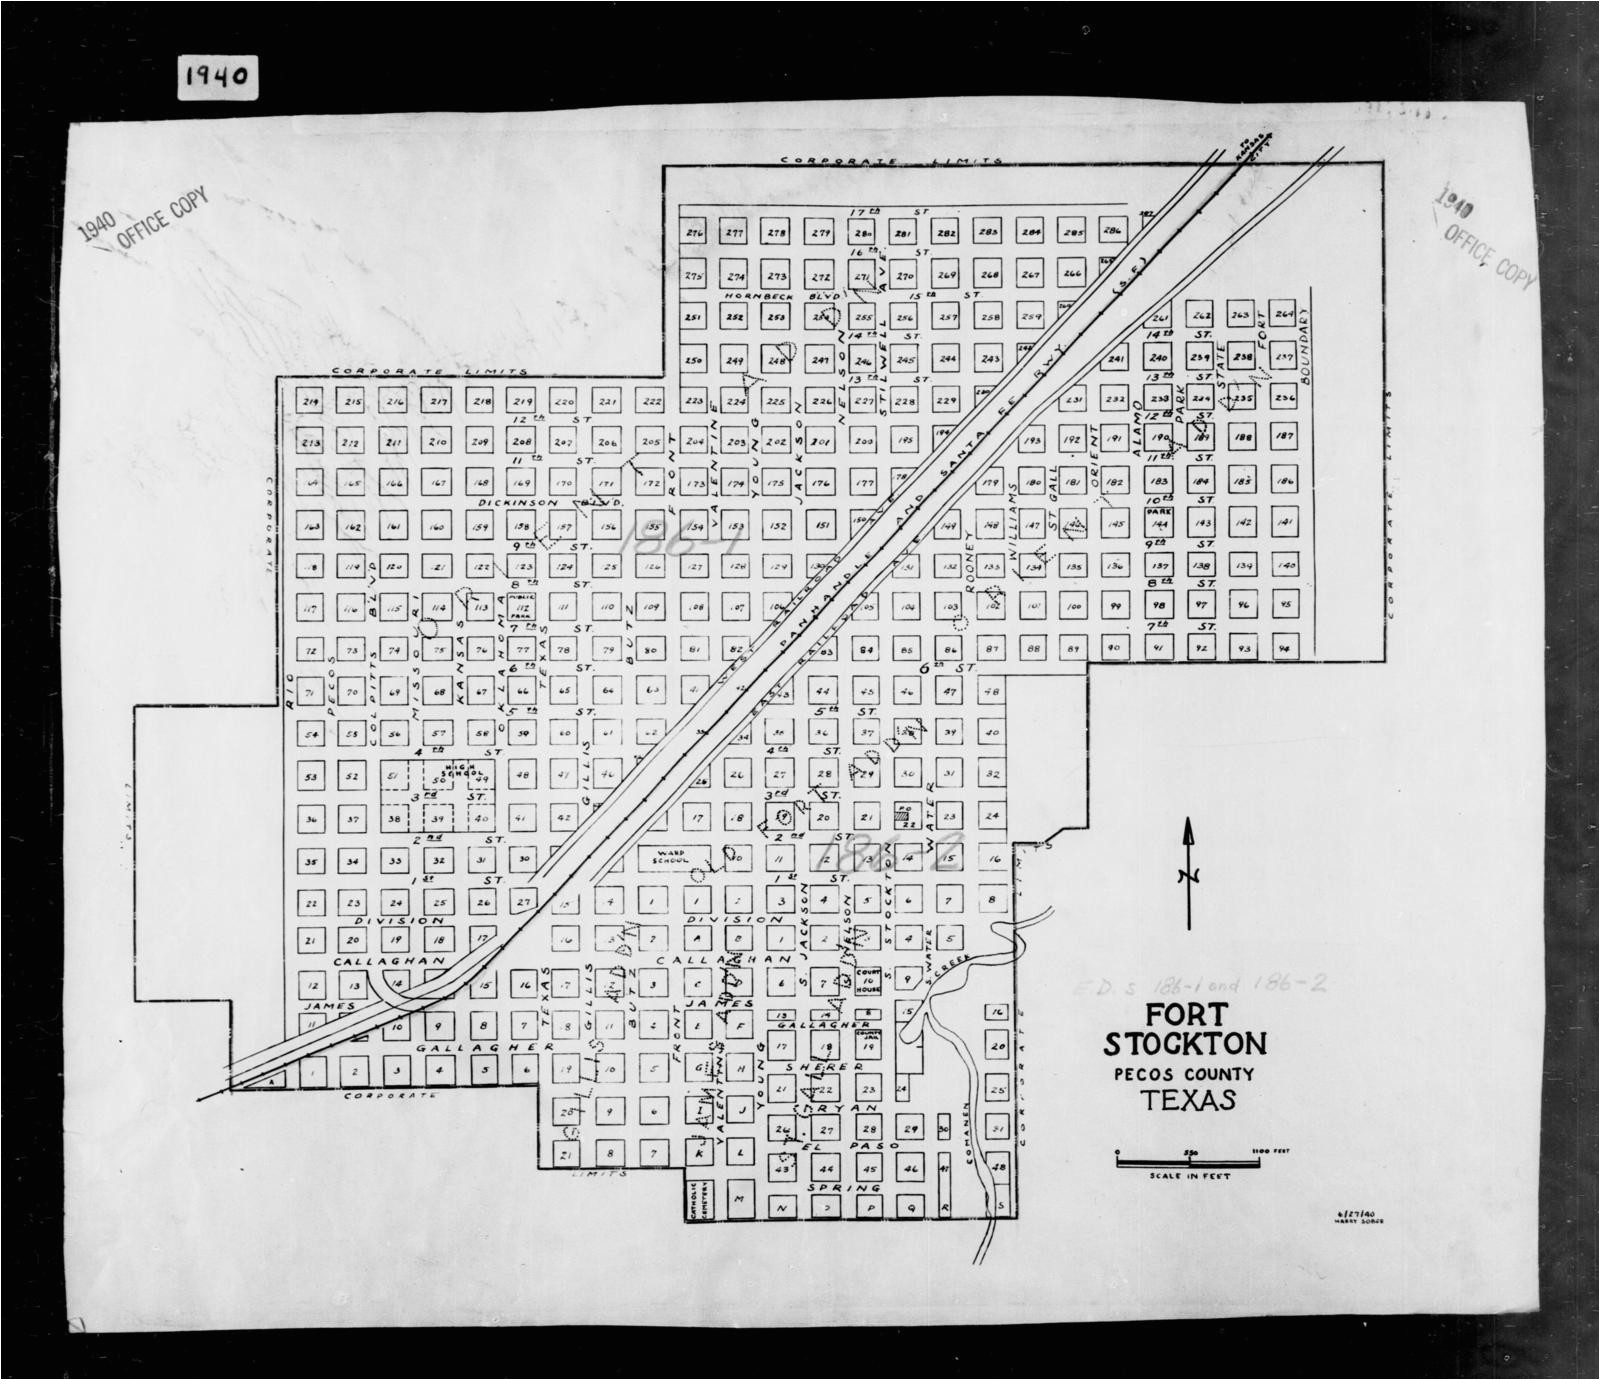 1940 census enumeration district maps texas pecos county fort